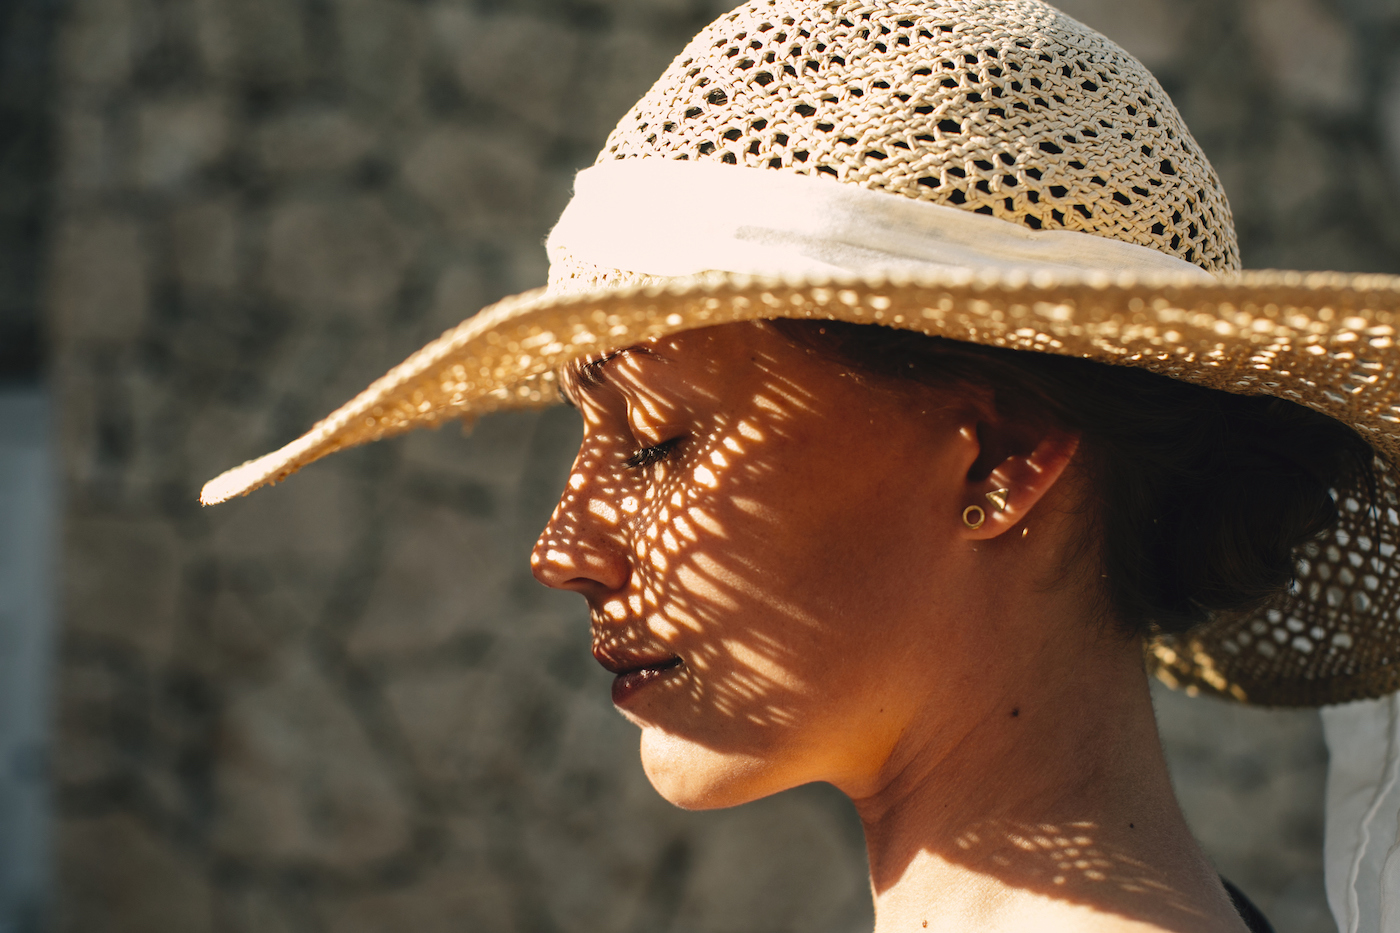 Thumbnail for 6 Spots That Are the Most Vulnerable for Long-Term Sun Damage